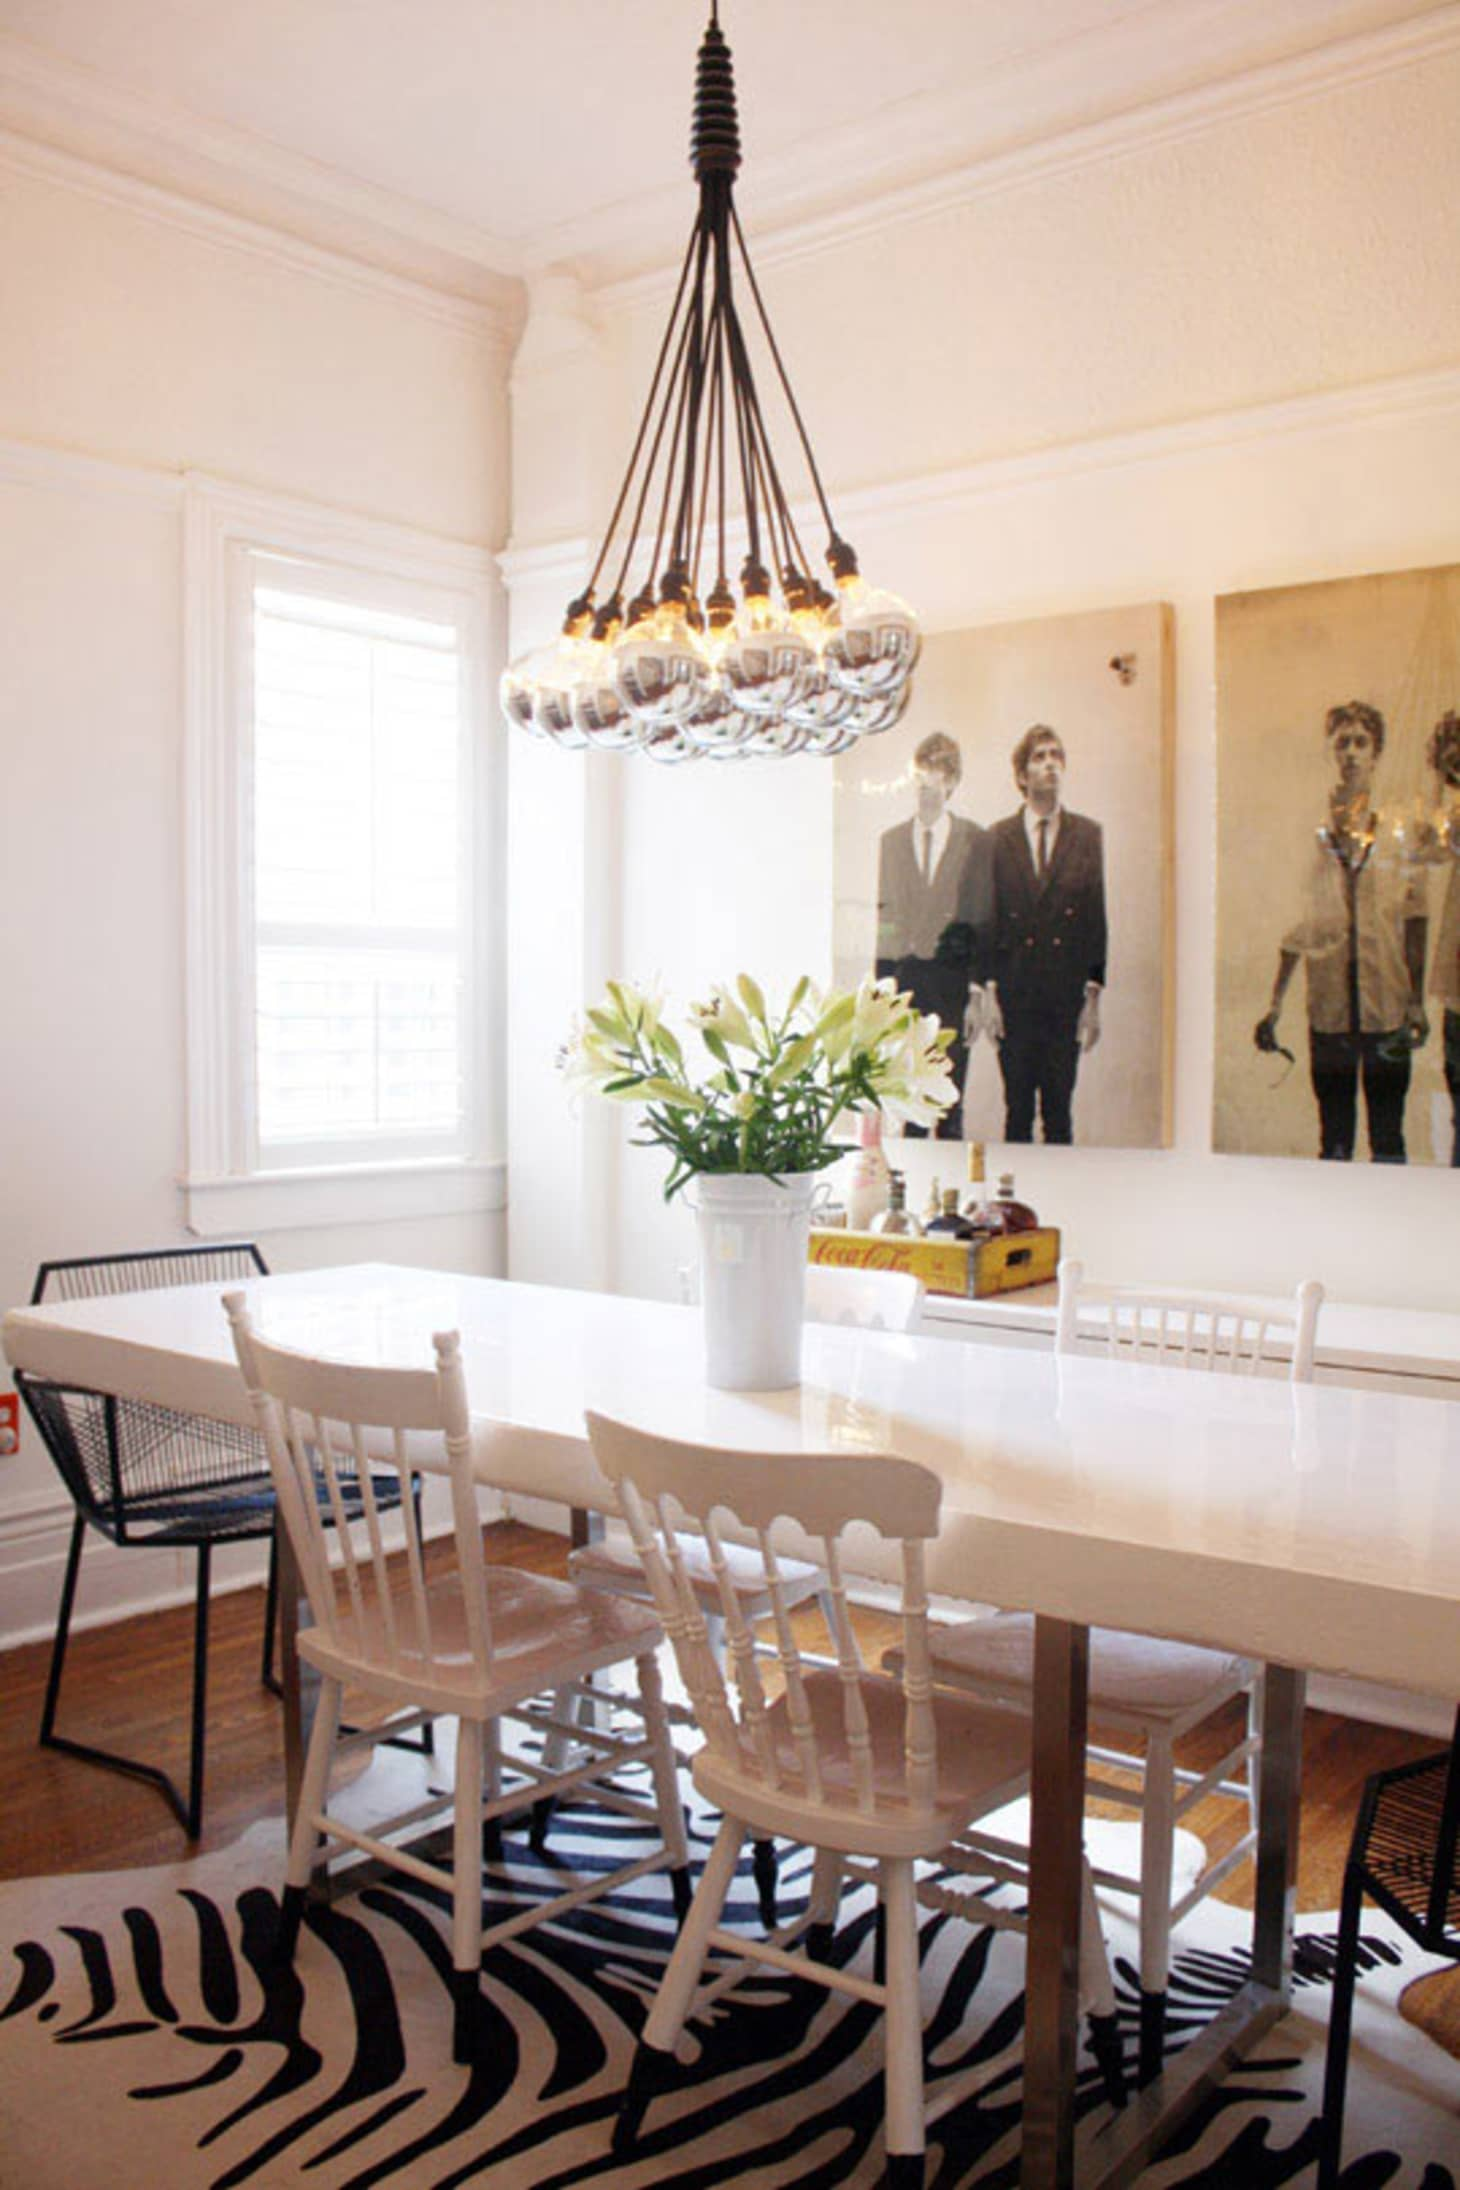 8 Tips for Mixing Styles at Home (Without Looking Like a ...